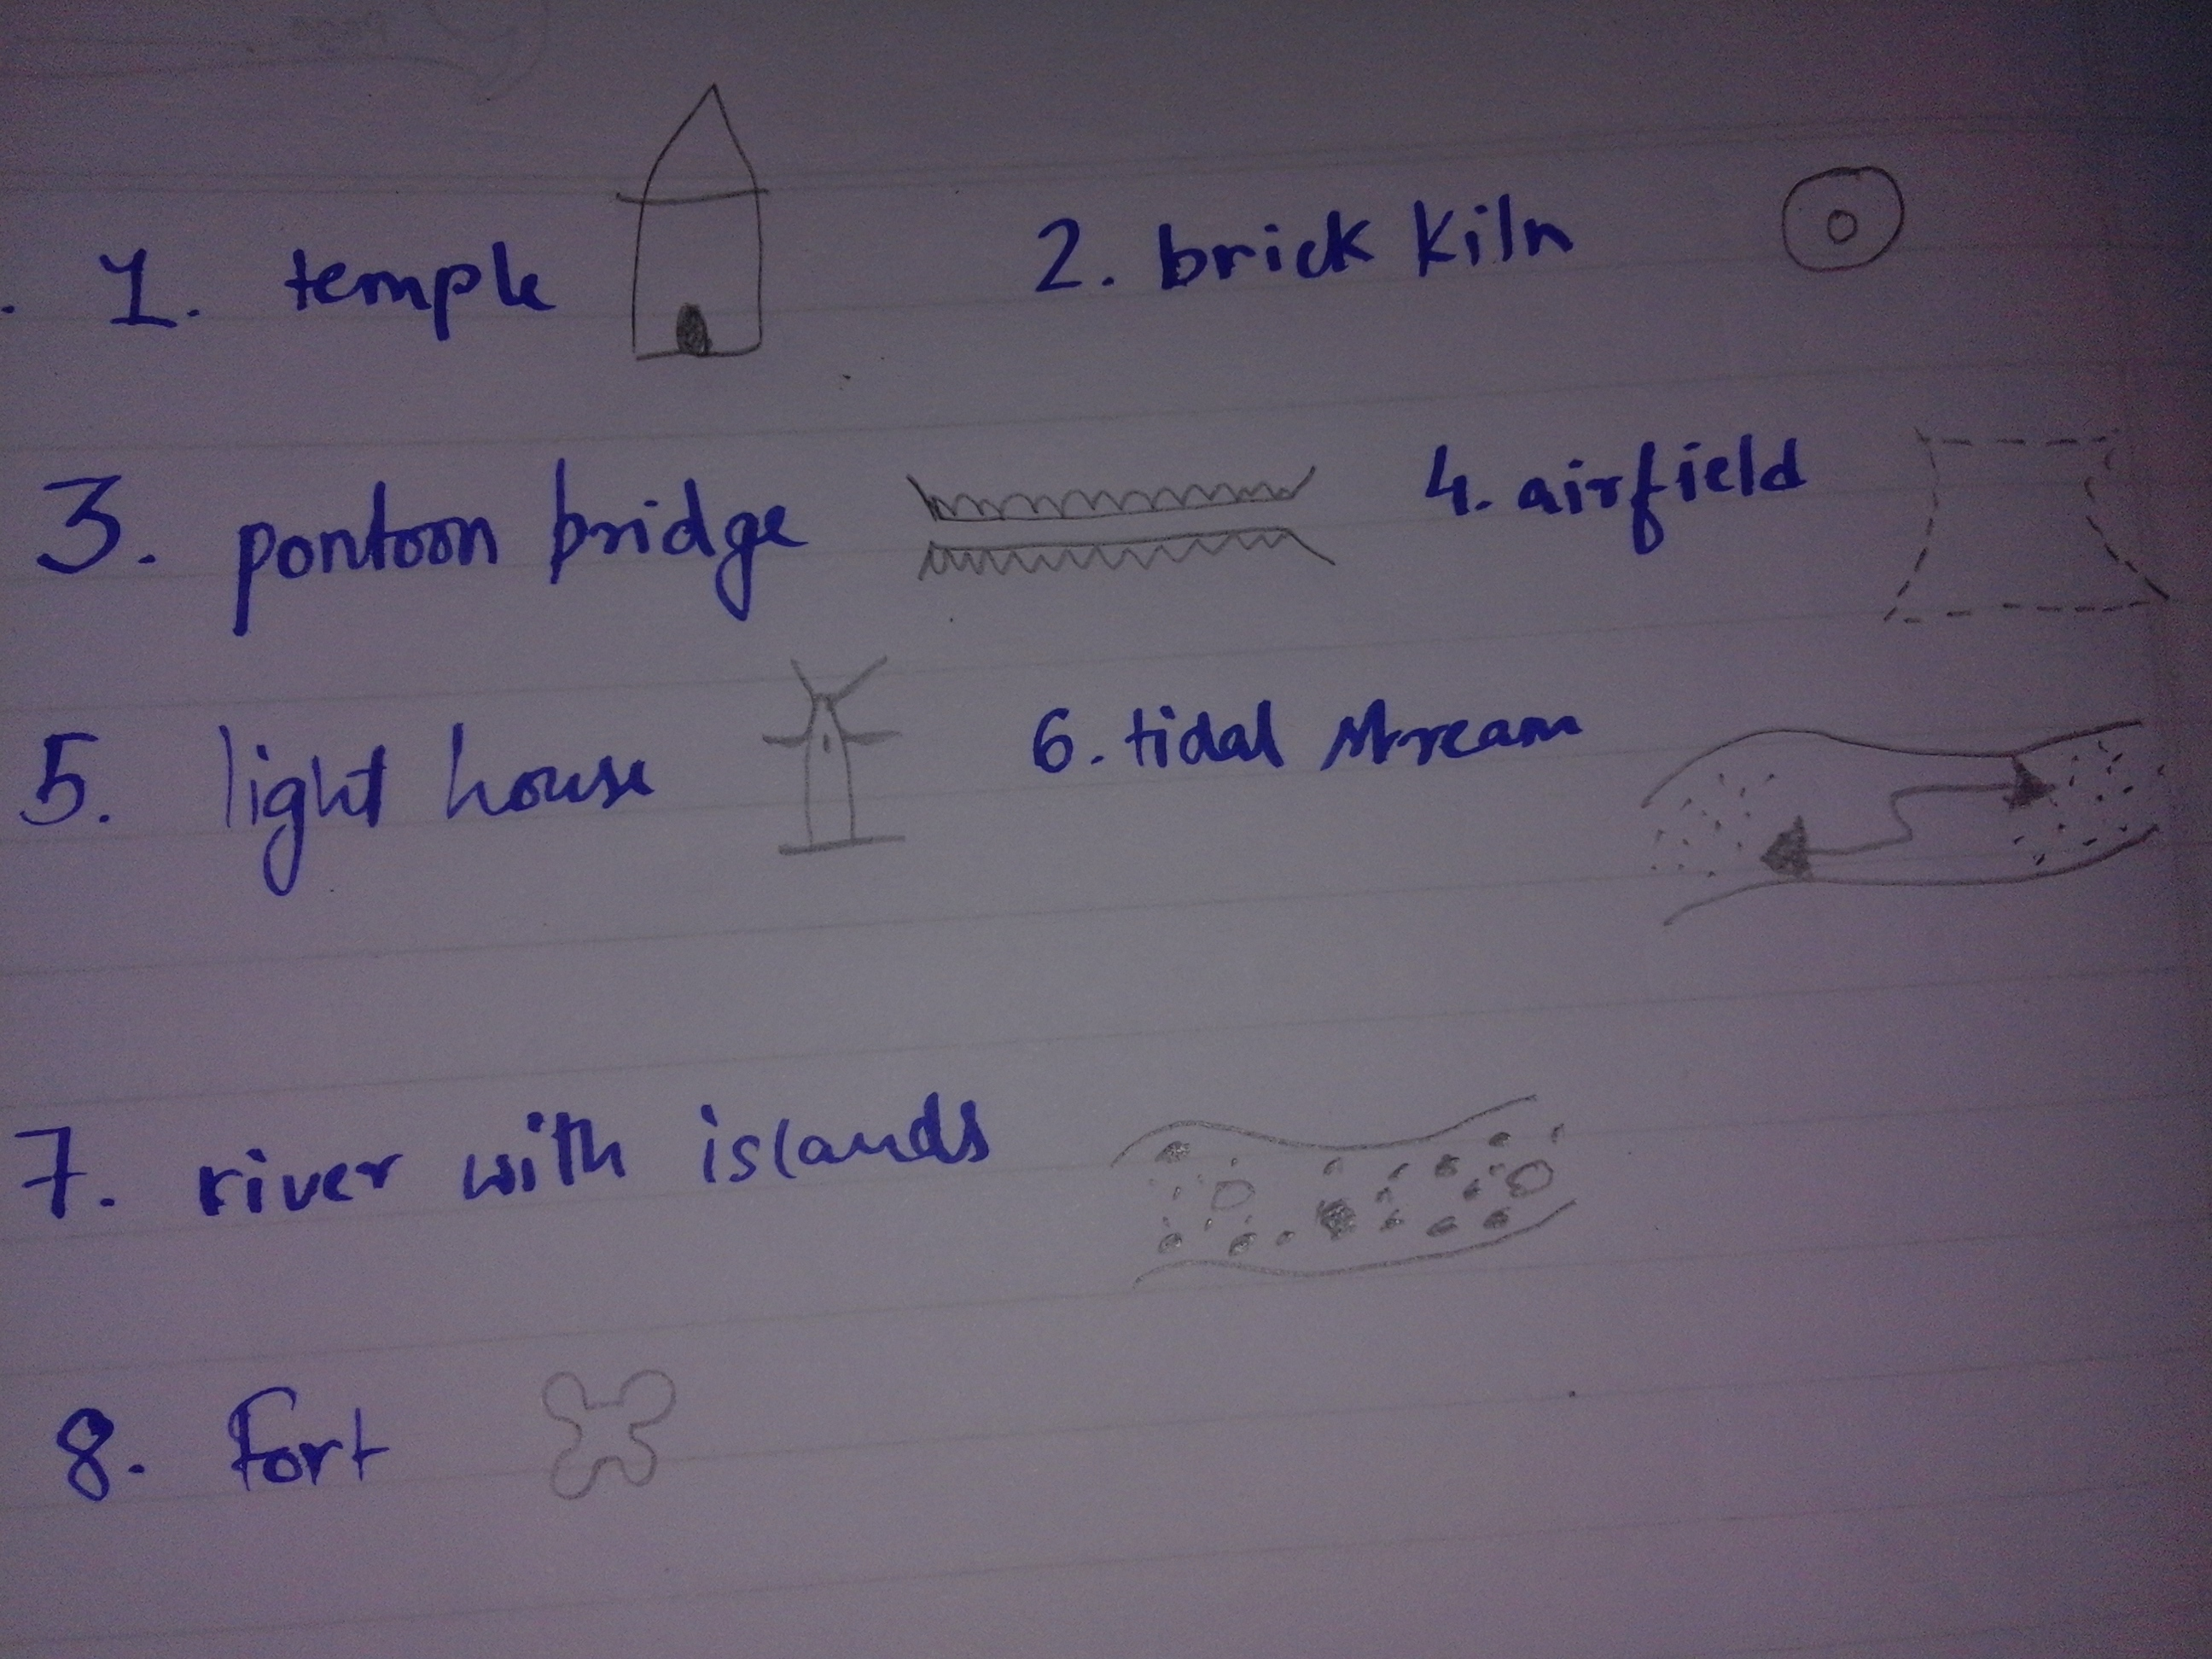 Draw The Symbols For The Following Features On A Map 1temple 2